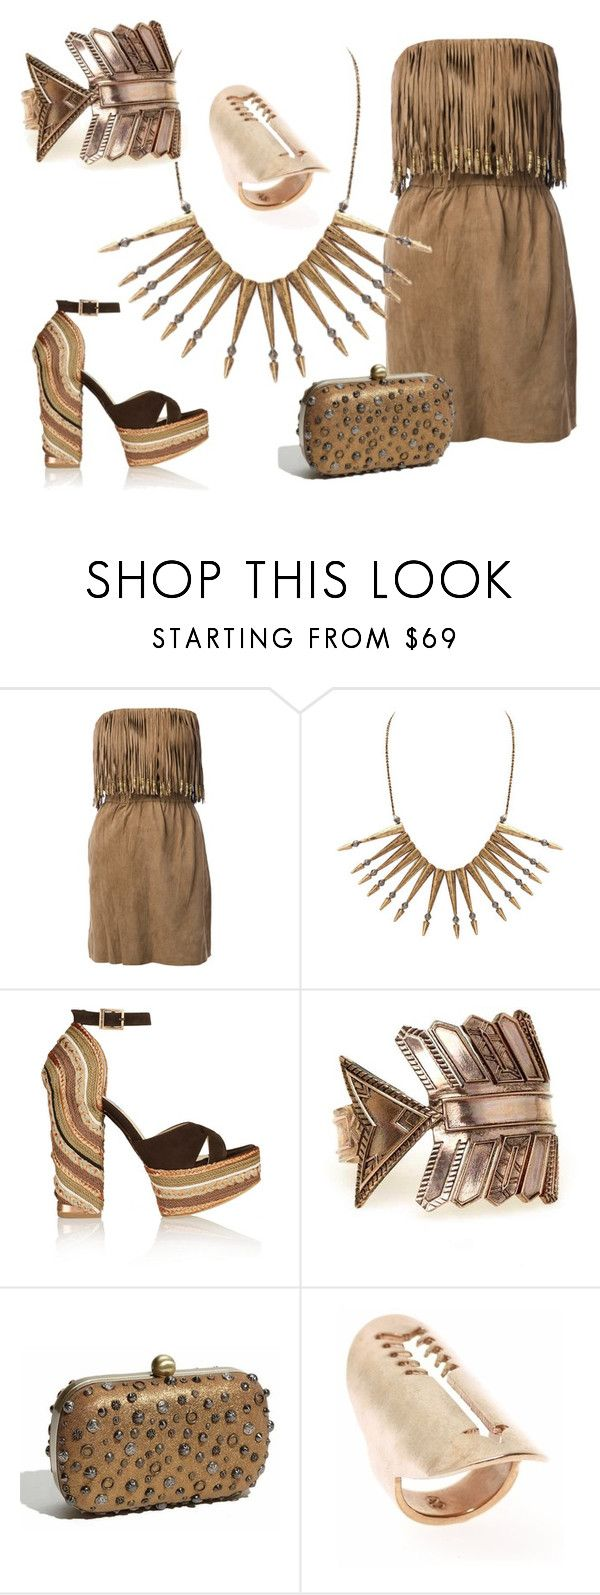 """""""Santa Fe"""" by southernreef ❤ liked on Polyvore featuring ByDanie, House of Harlow 1960, Paloma Barceló and modern"""